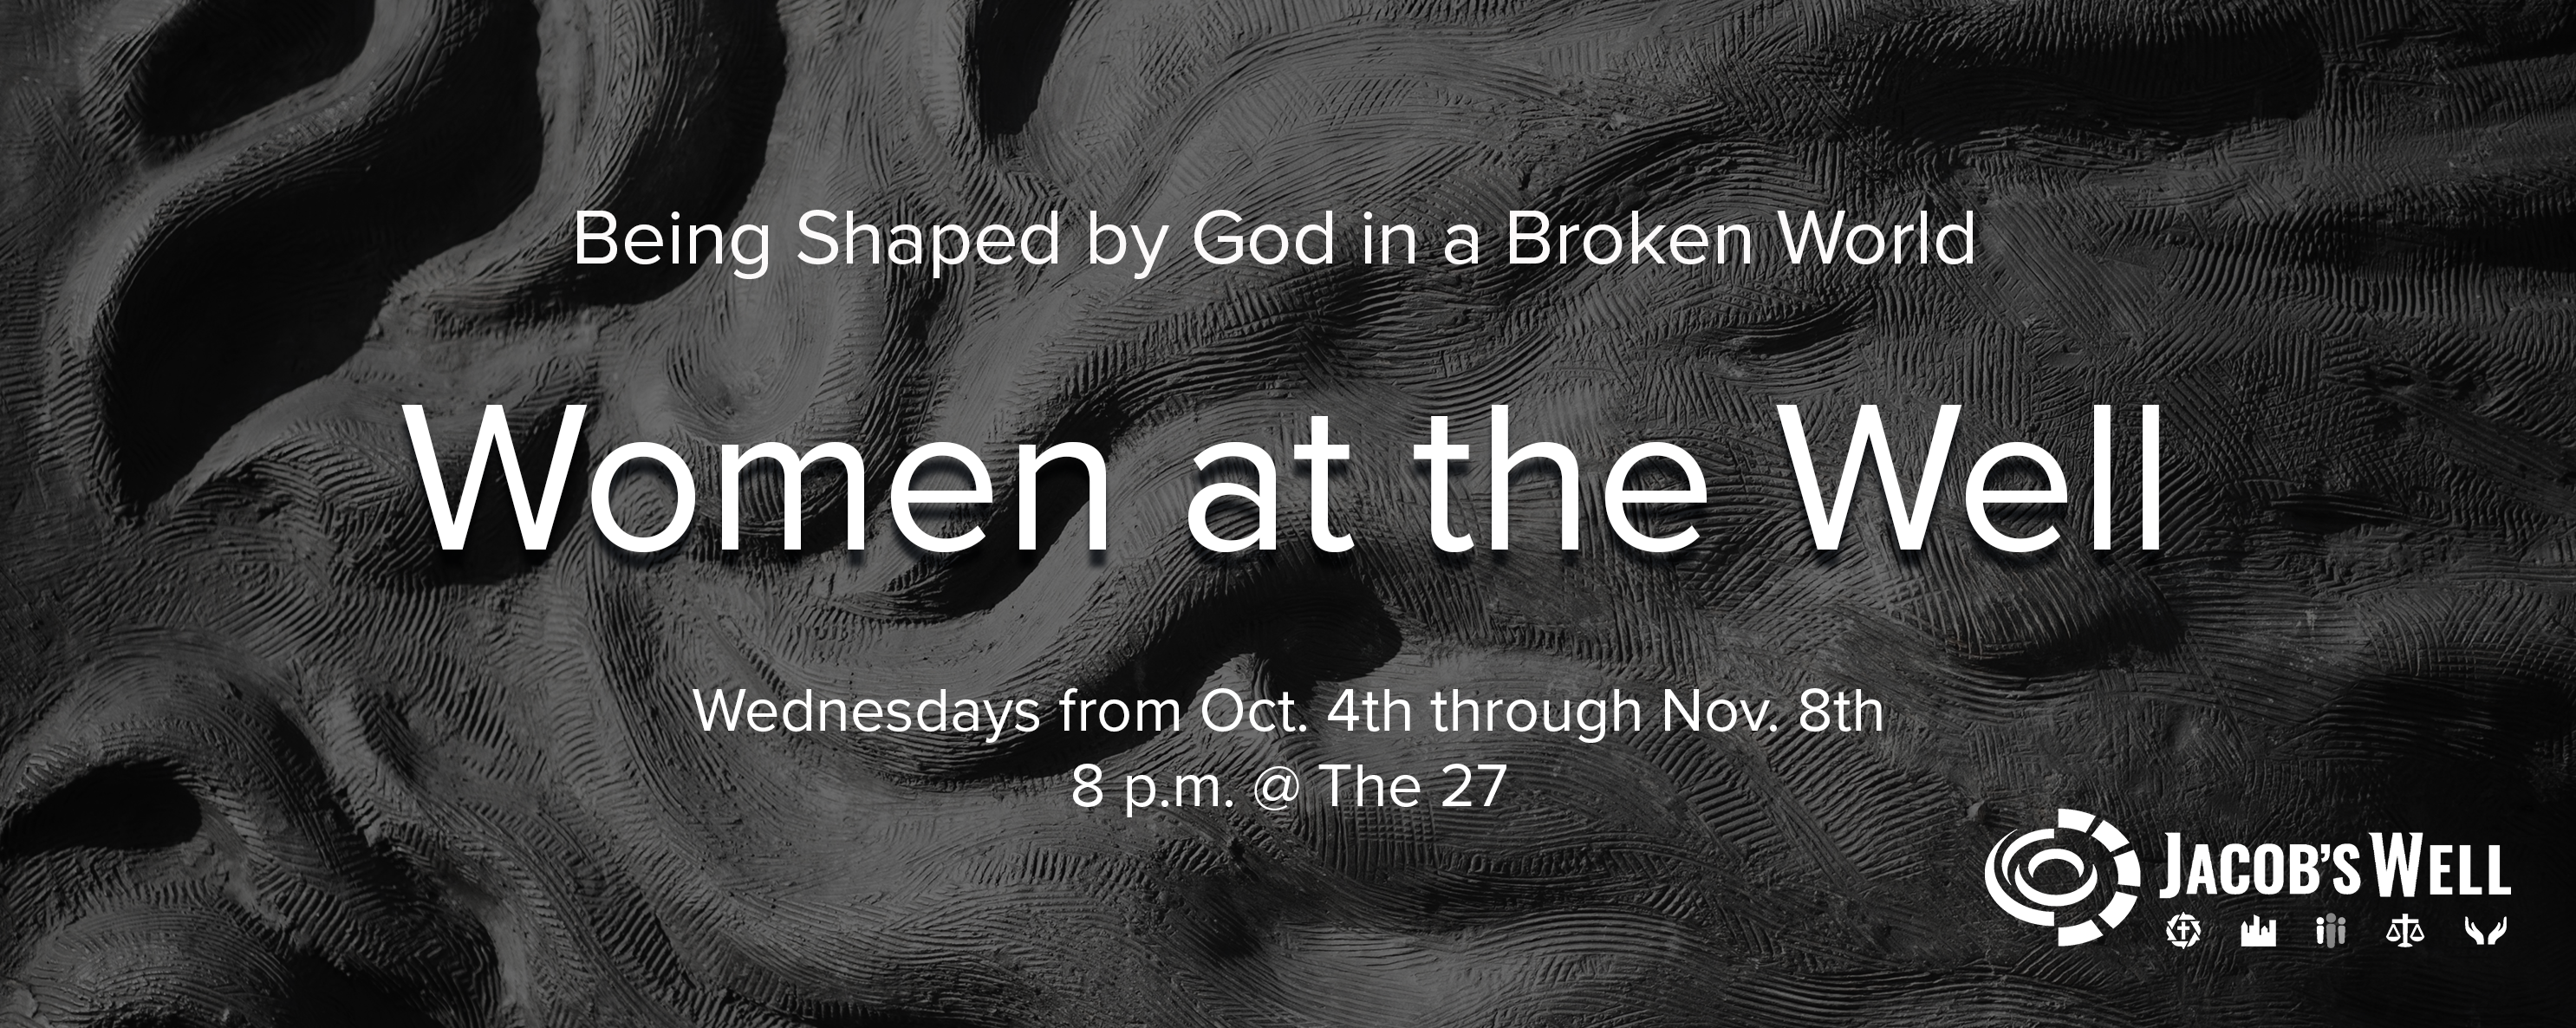 Women at the Well Fall 2017 image